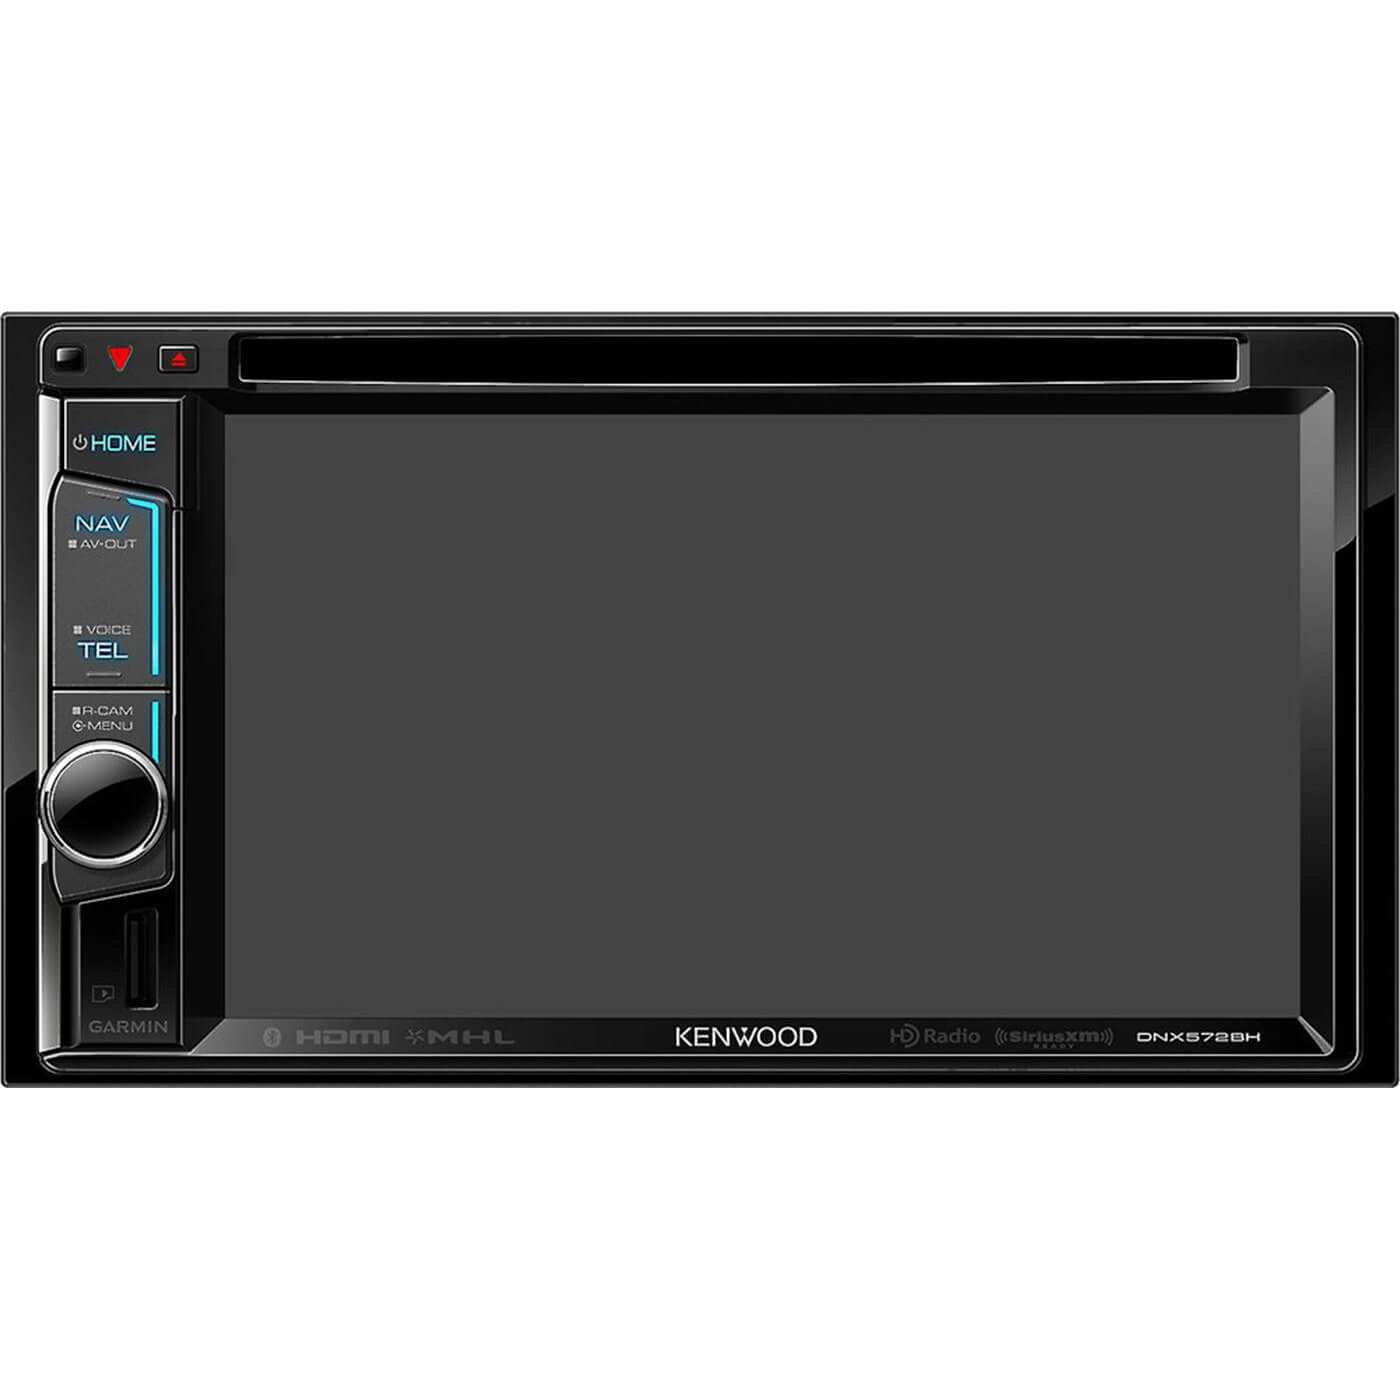 Kenwood Dnx572bh Wiring Diagram